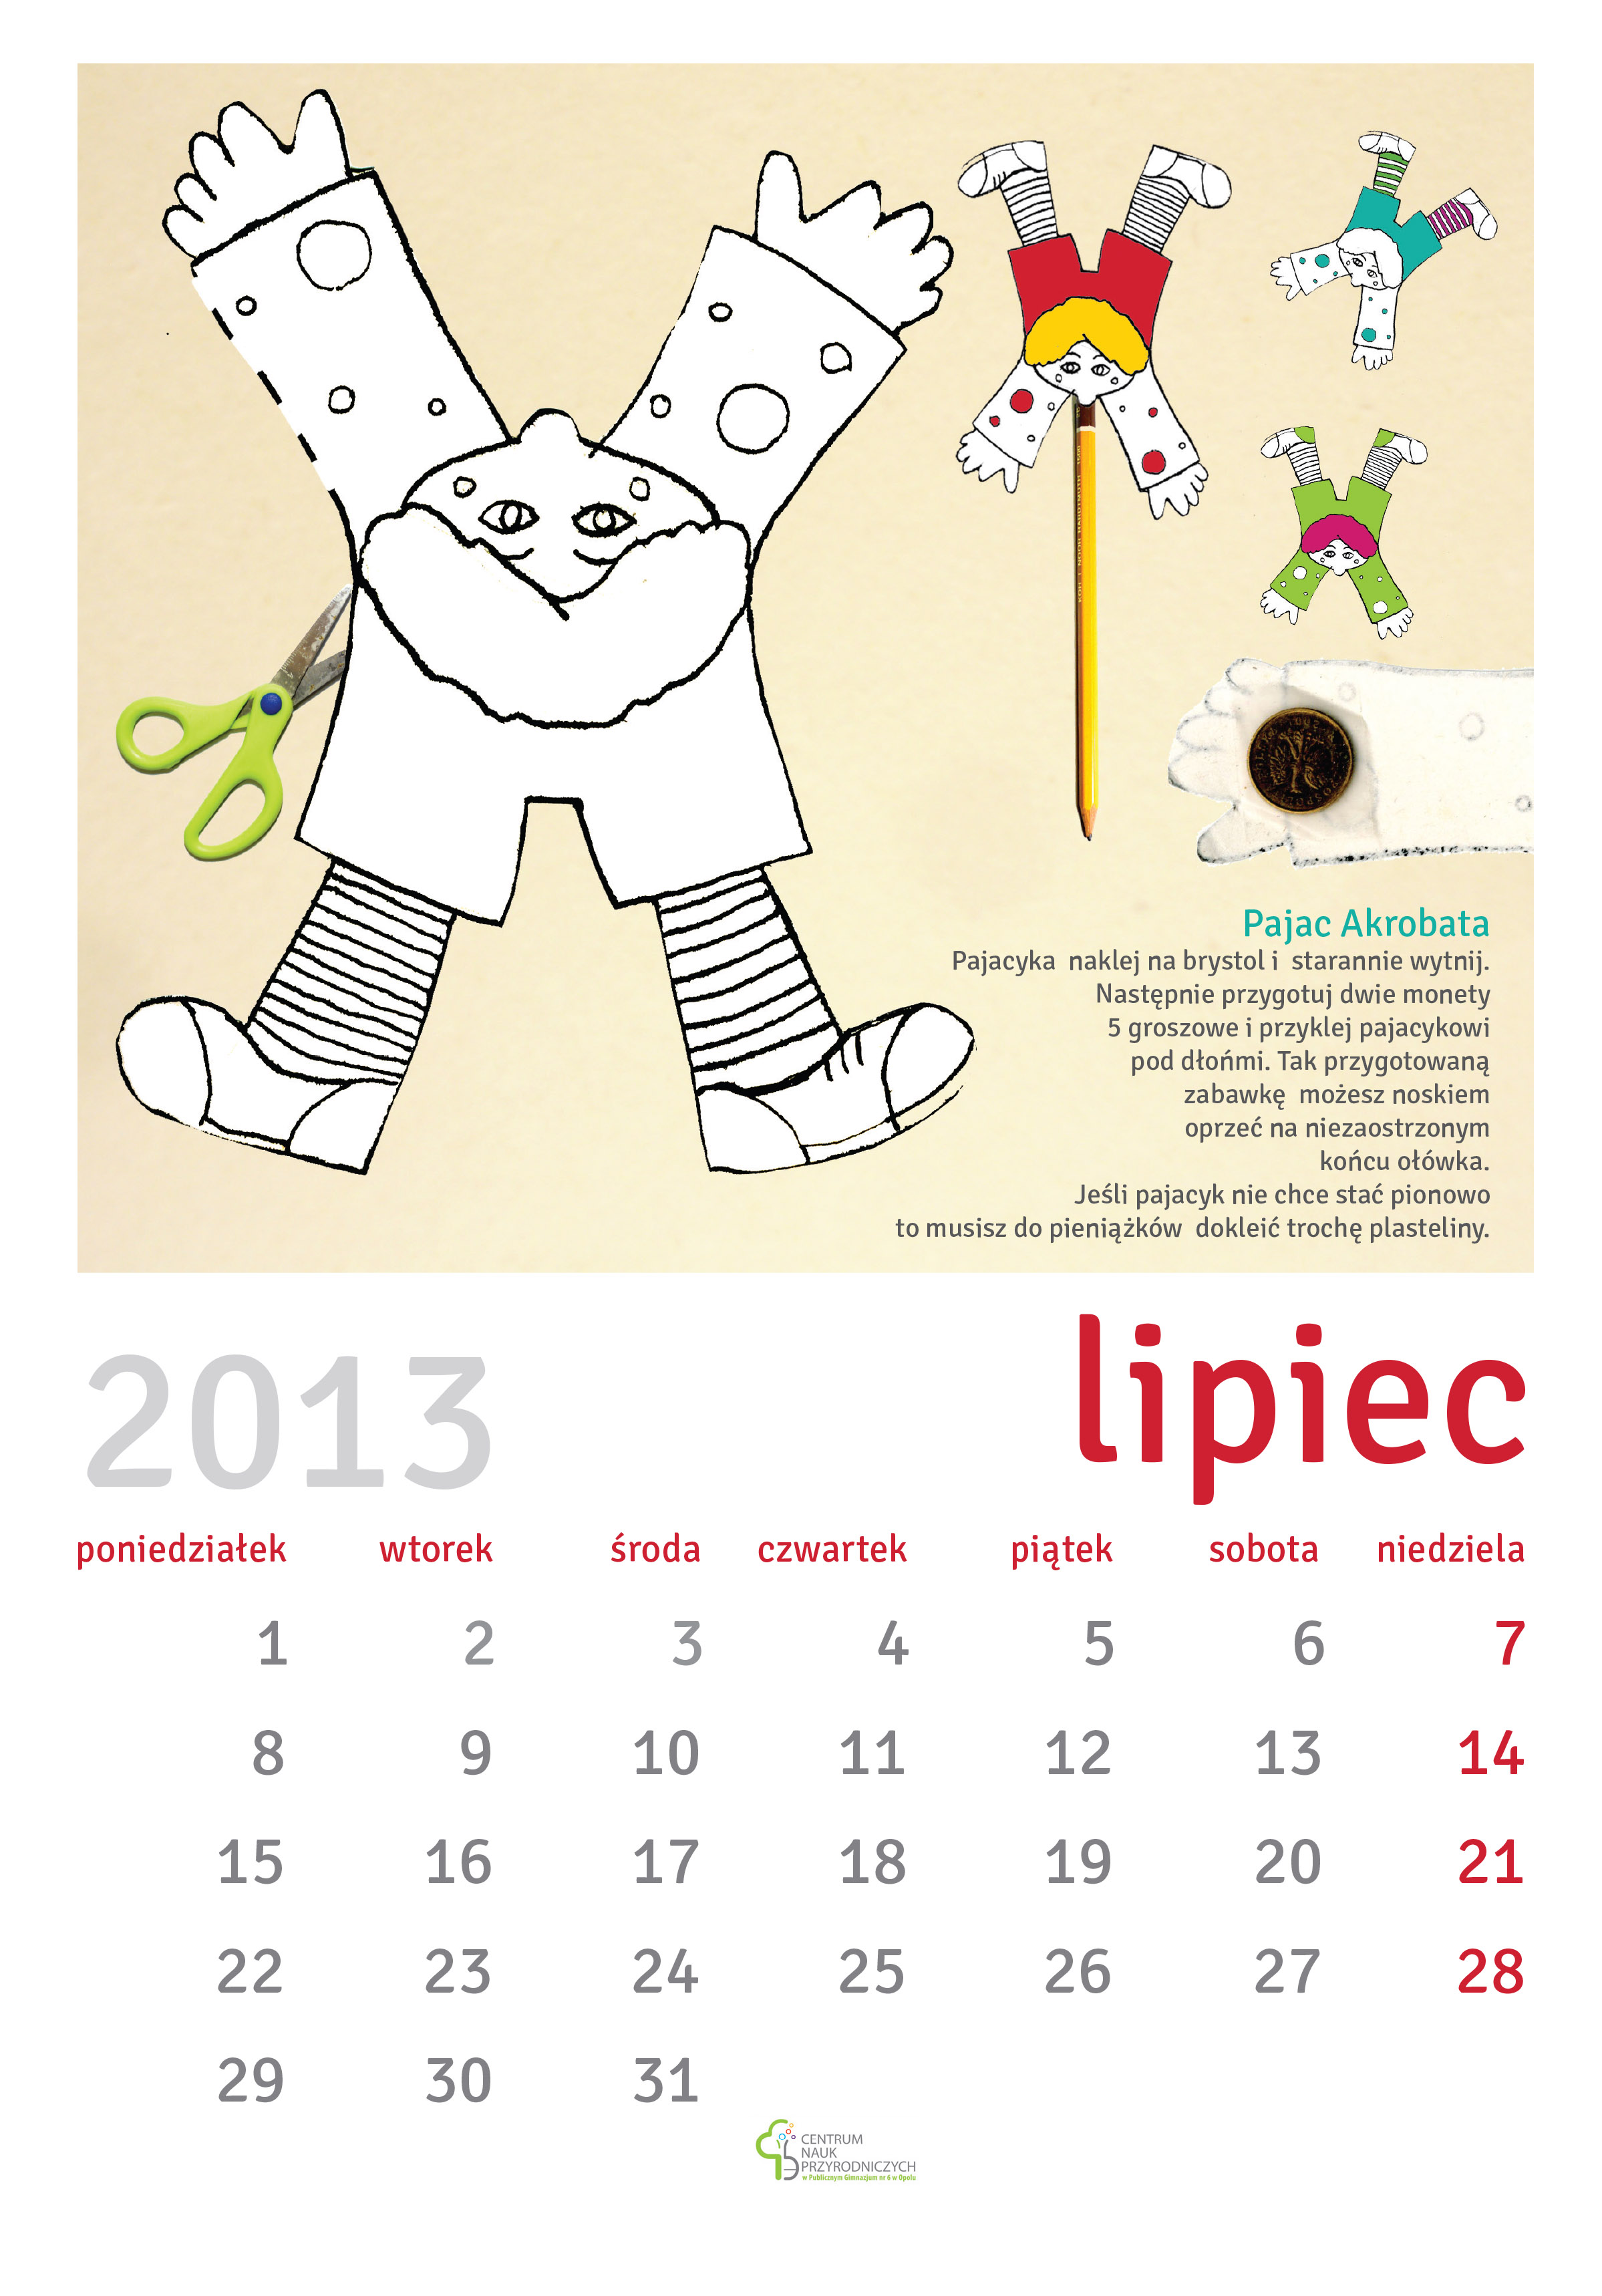 Calendar maria bitka calendar cards designed for opole sciences centre each card includes a do it yourself task from the domain of life sciences solutioingenieria Gallery